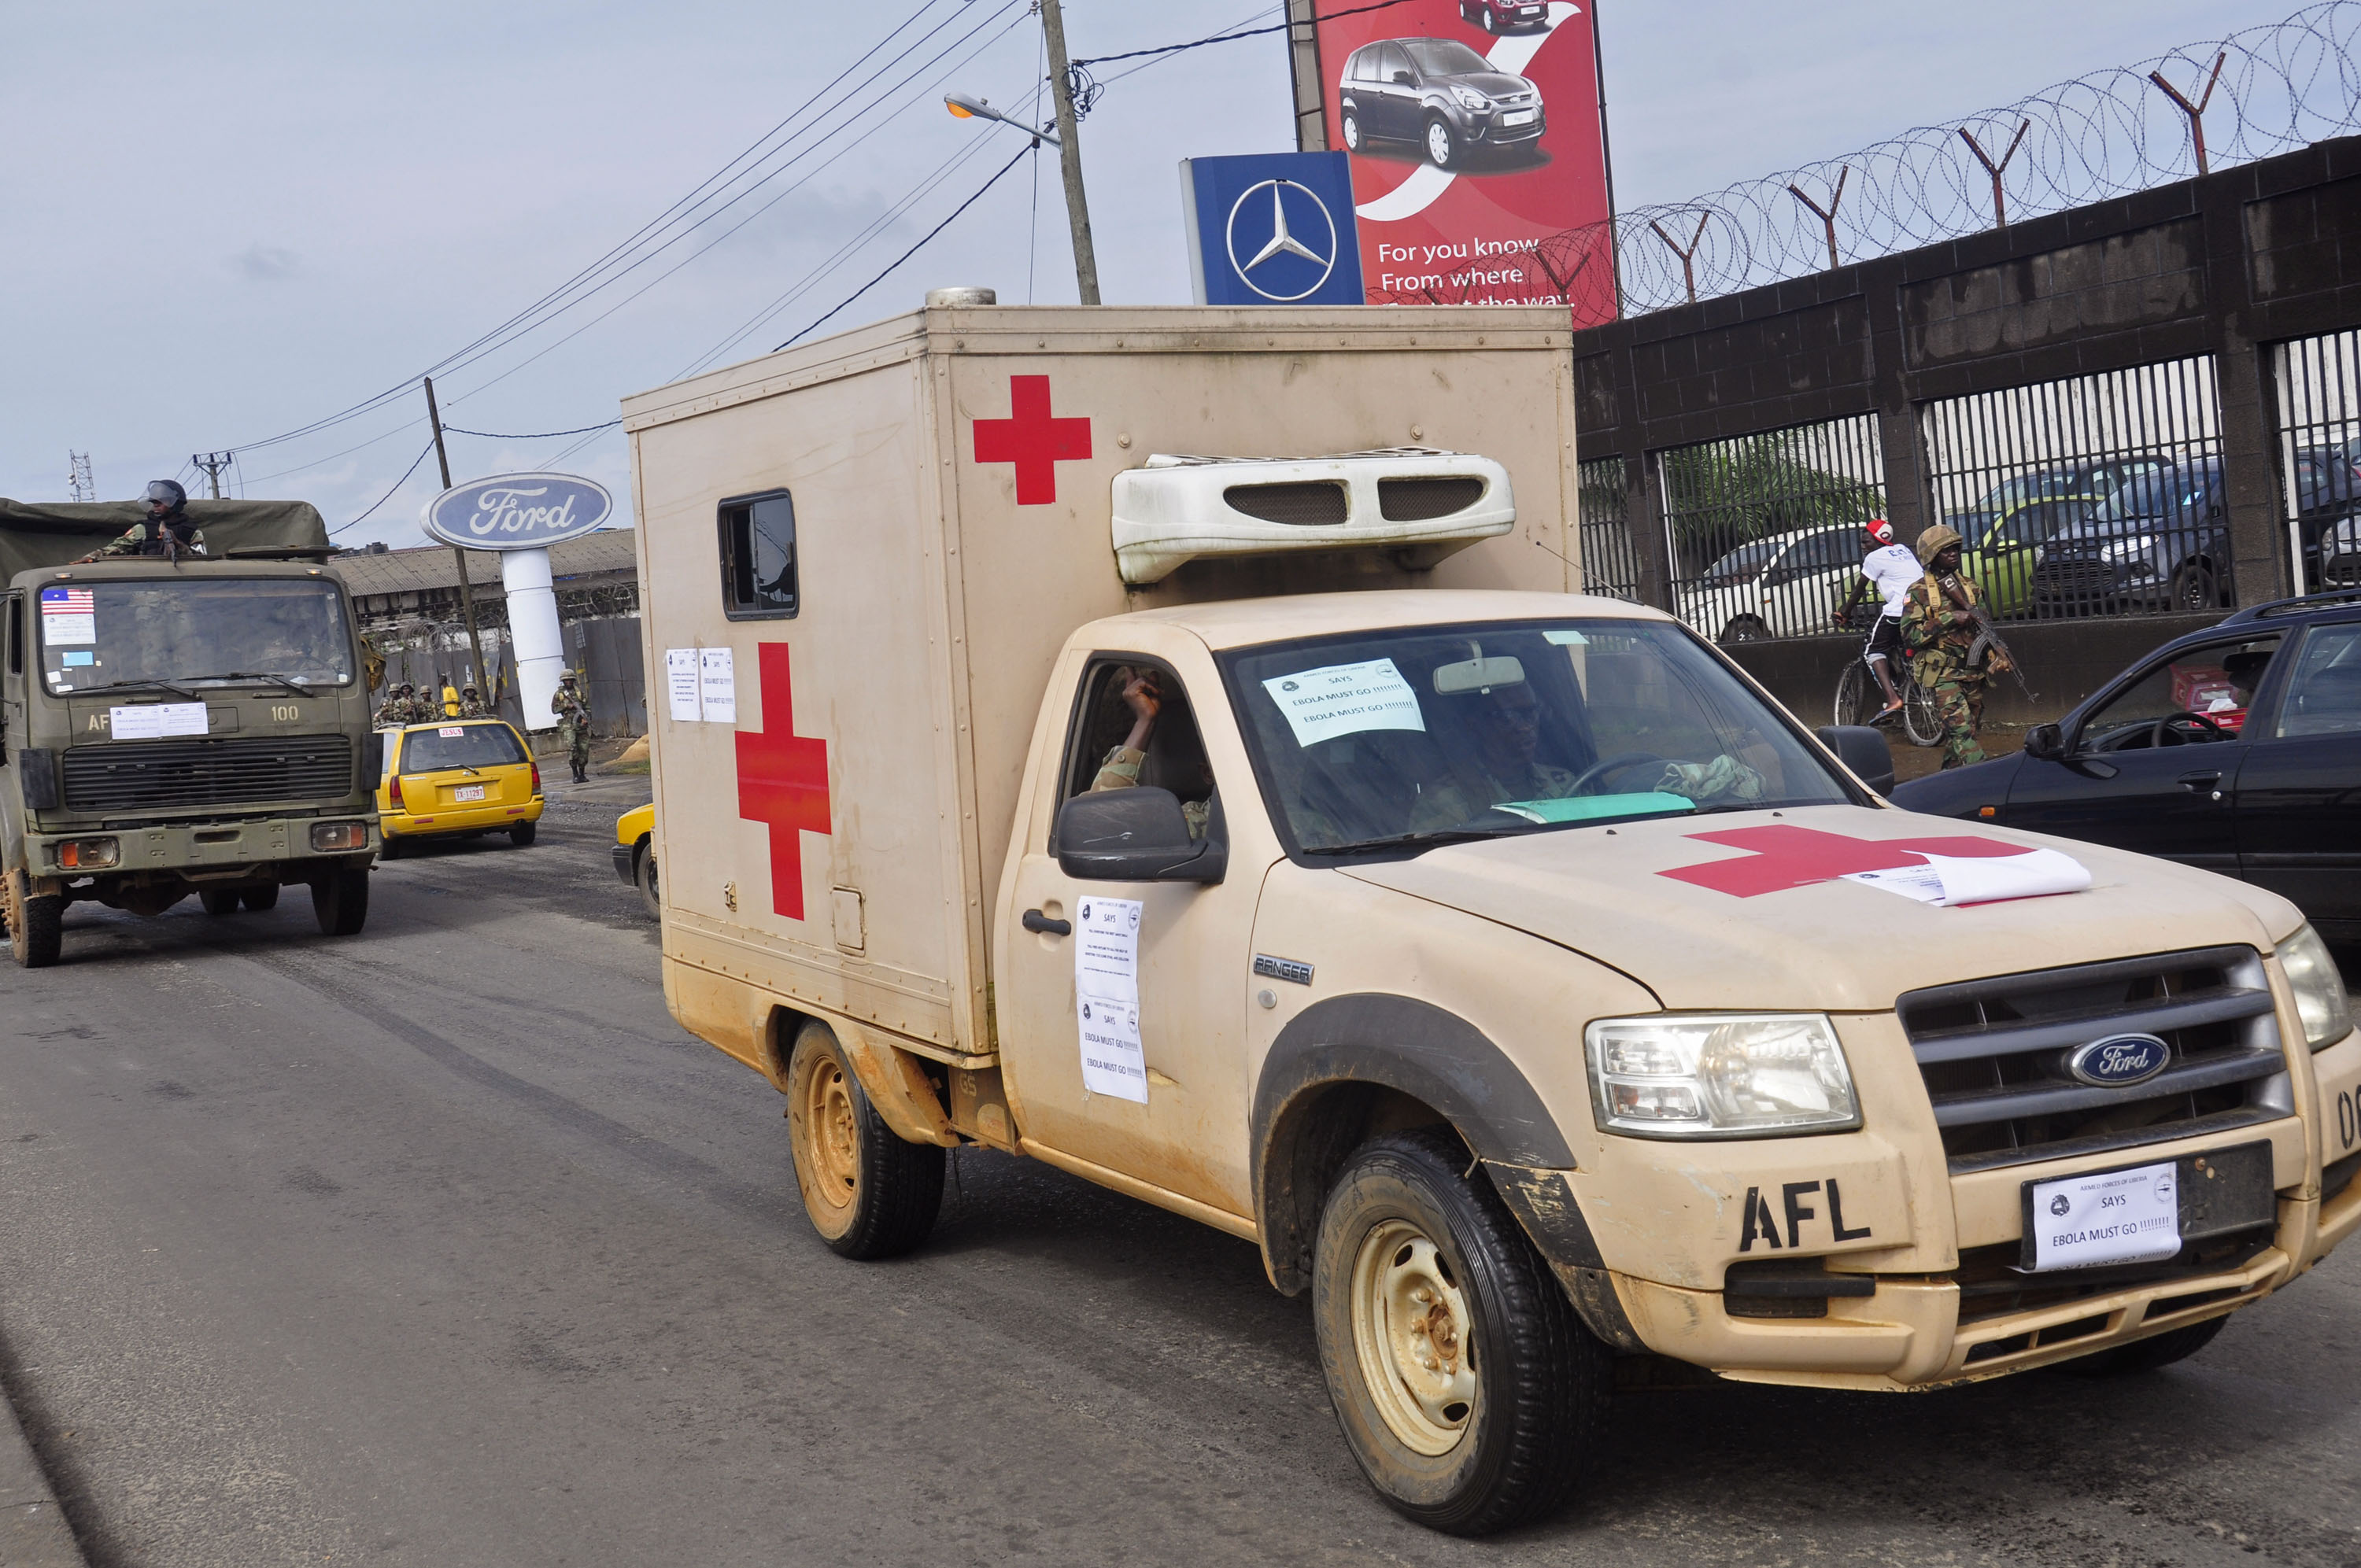 Liberian soldiers in a medical truck, with papers on it reading 'EBOLA MOST GO' on Friday, Aug 1, 2014. U.S. health officials warned Americans not to travel to the three West African countries hit by the worst recorded Ebola outbreak in history. The first case of Ebola was confirmed in the U.S. this week, but officials are saying there's no need to panic. (AP Photo/Abbas Dulleh)